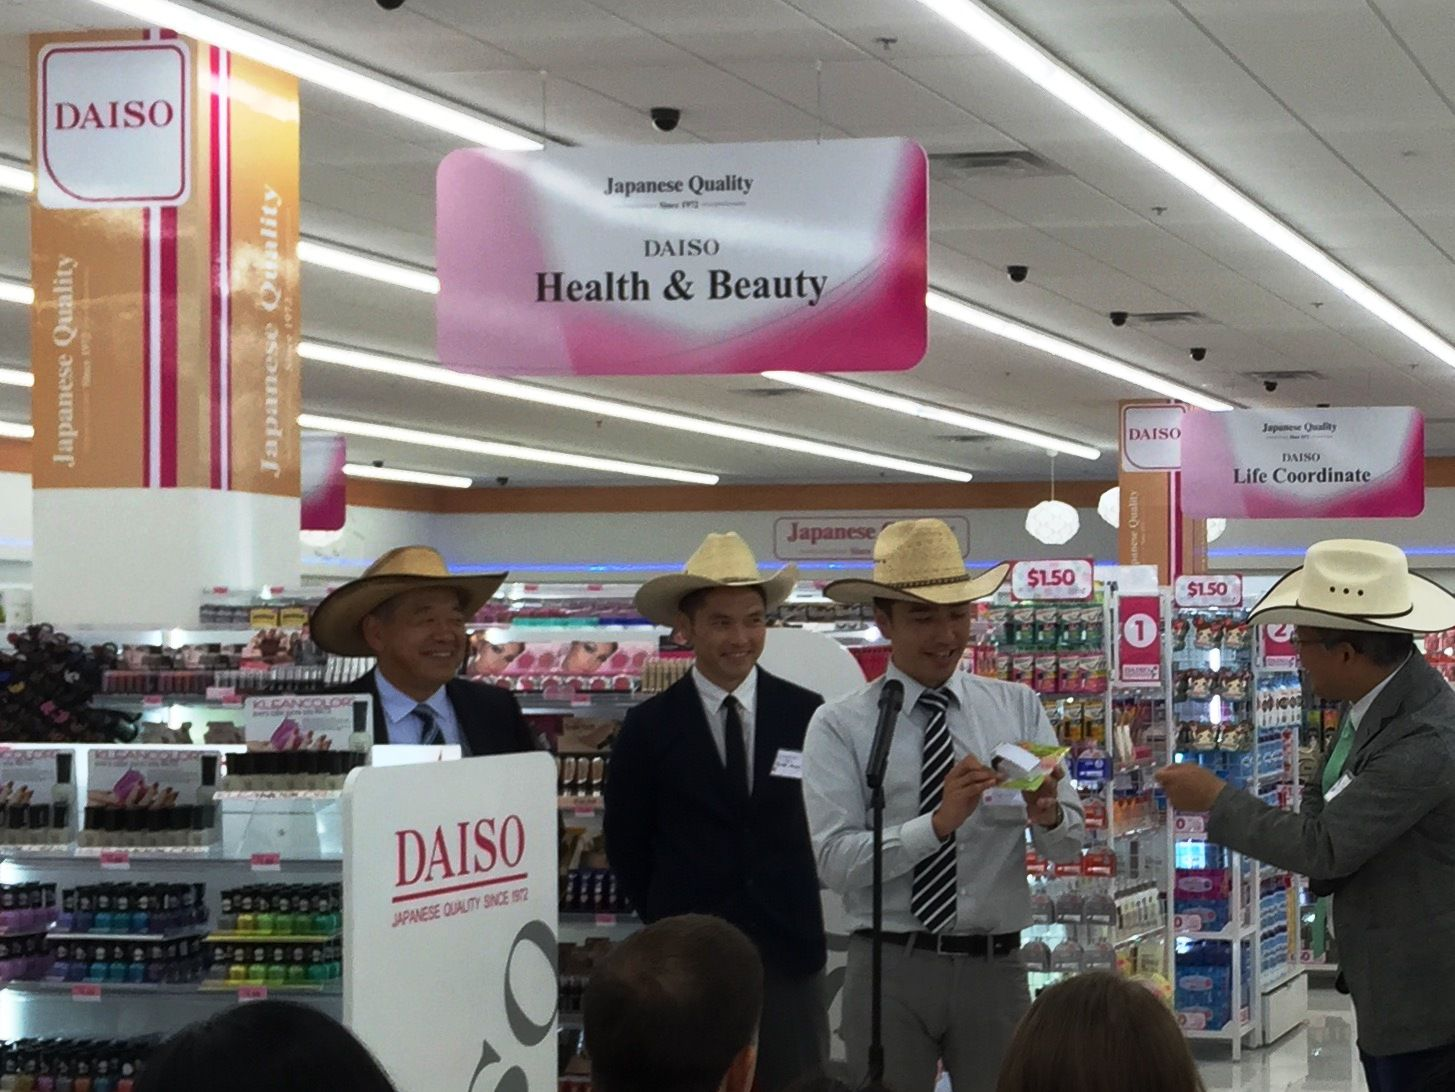 Daiso officials held a press conference at their new store opening in Carrollton Friday, July 31, 2015. They're wearing hats from the store's accessories aisle. Pictured left to right are Yoshi Murata, senior vice president, Ryuta Kamei, Toyo Sugisaki and Masayoshi Naito, president of Daiso Holding U.S.A. (DMN staff photo Maria Halkias)